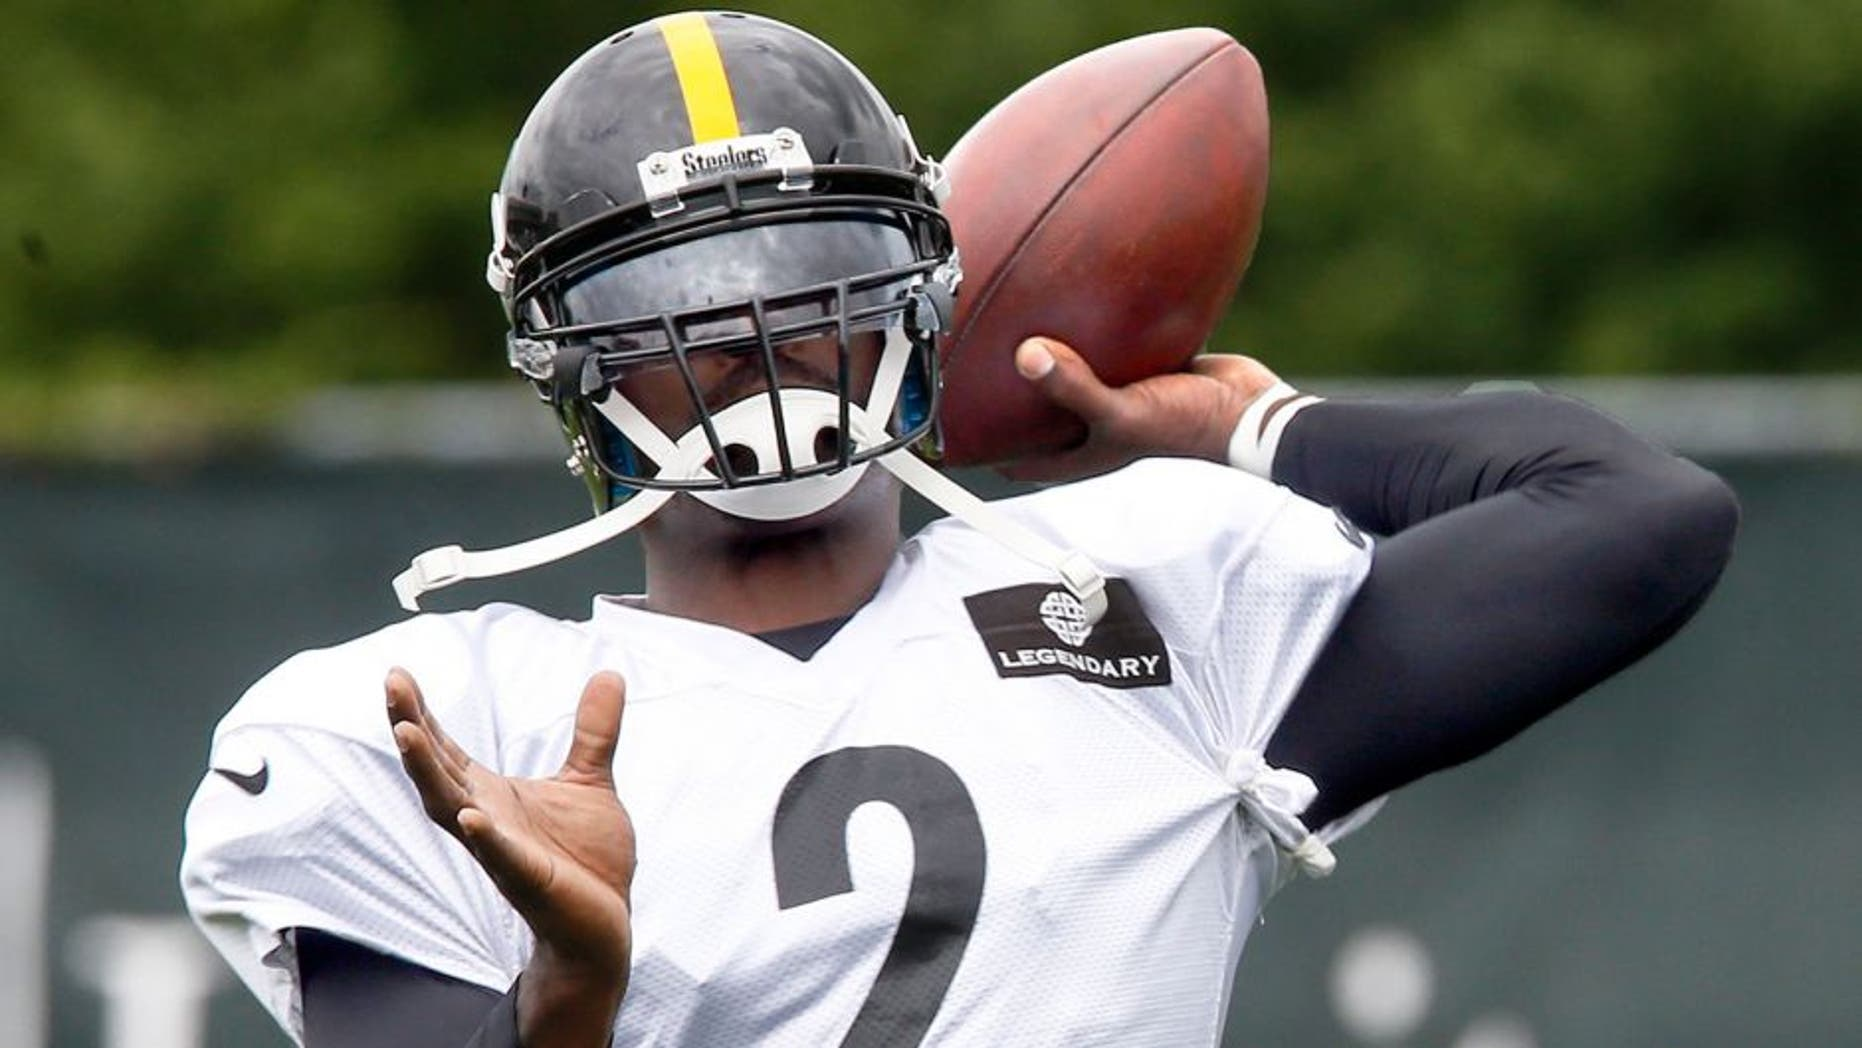 Pittsburgh Steelers quarterback Michael Vick passes during practice for the NFL football team, Wednesday, Aug. 26, 2015 in Pittsburgh. The Steelers signed Vick to a 1-year deal to replace backup Bruce Gradkowski, out with a hand injury. (AP Photo/Keith Srakocic)